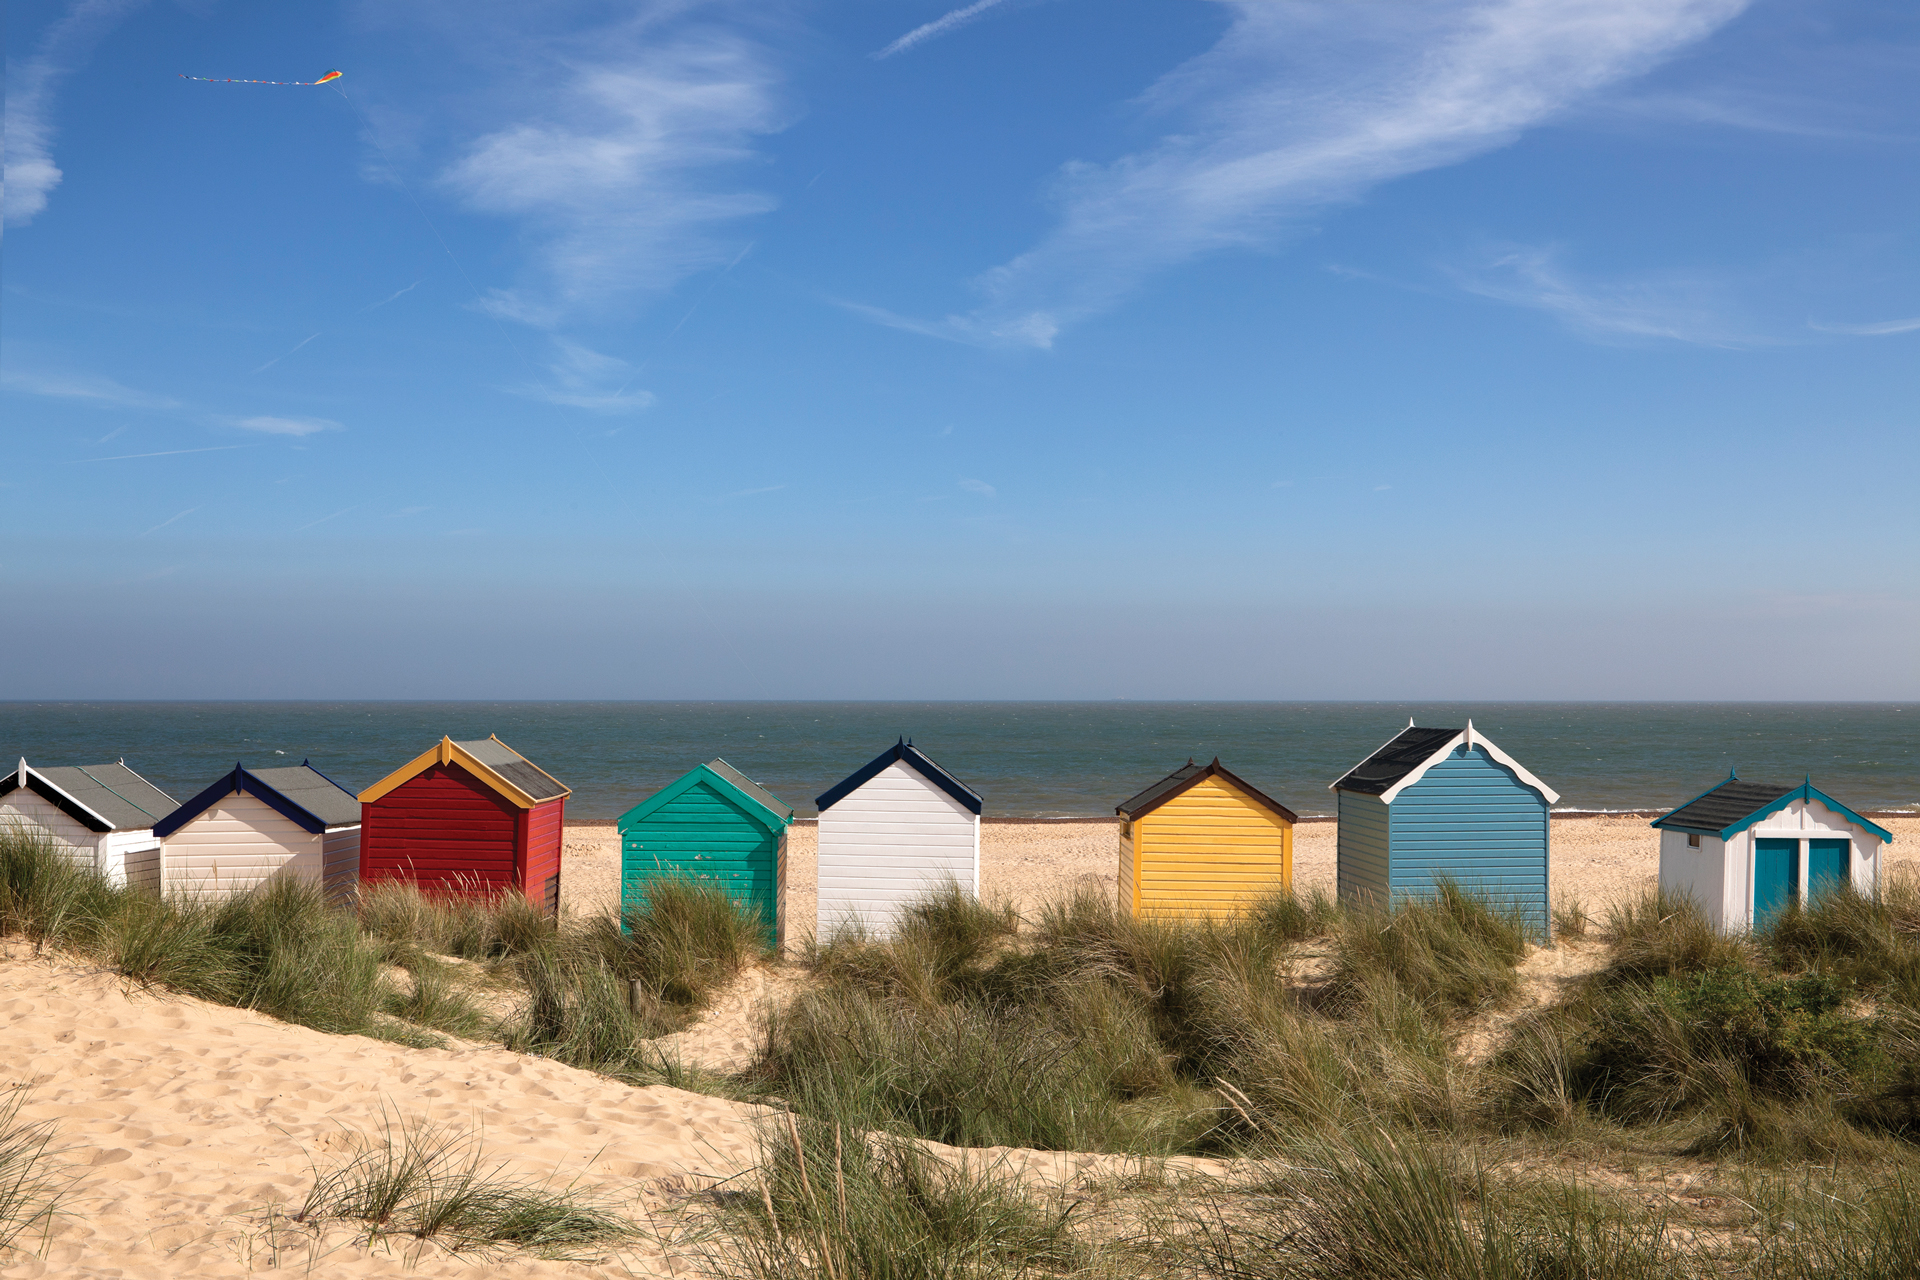 Could a modern version of the traditional beach hut provide opportunities for artisans to run small businesses? © istock